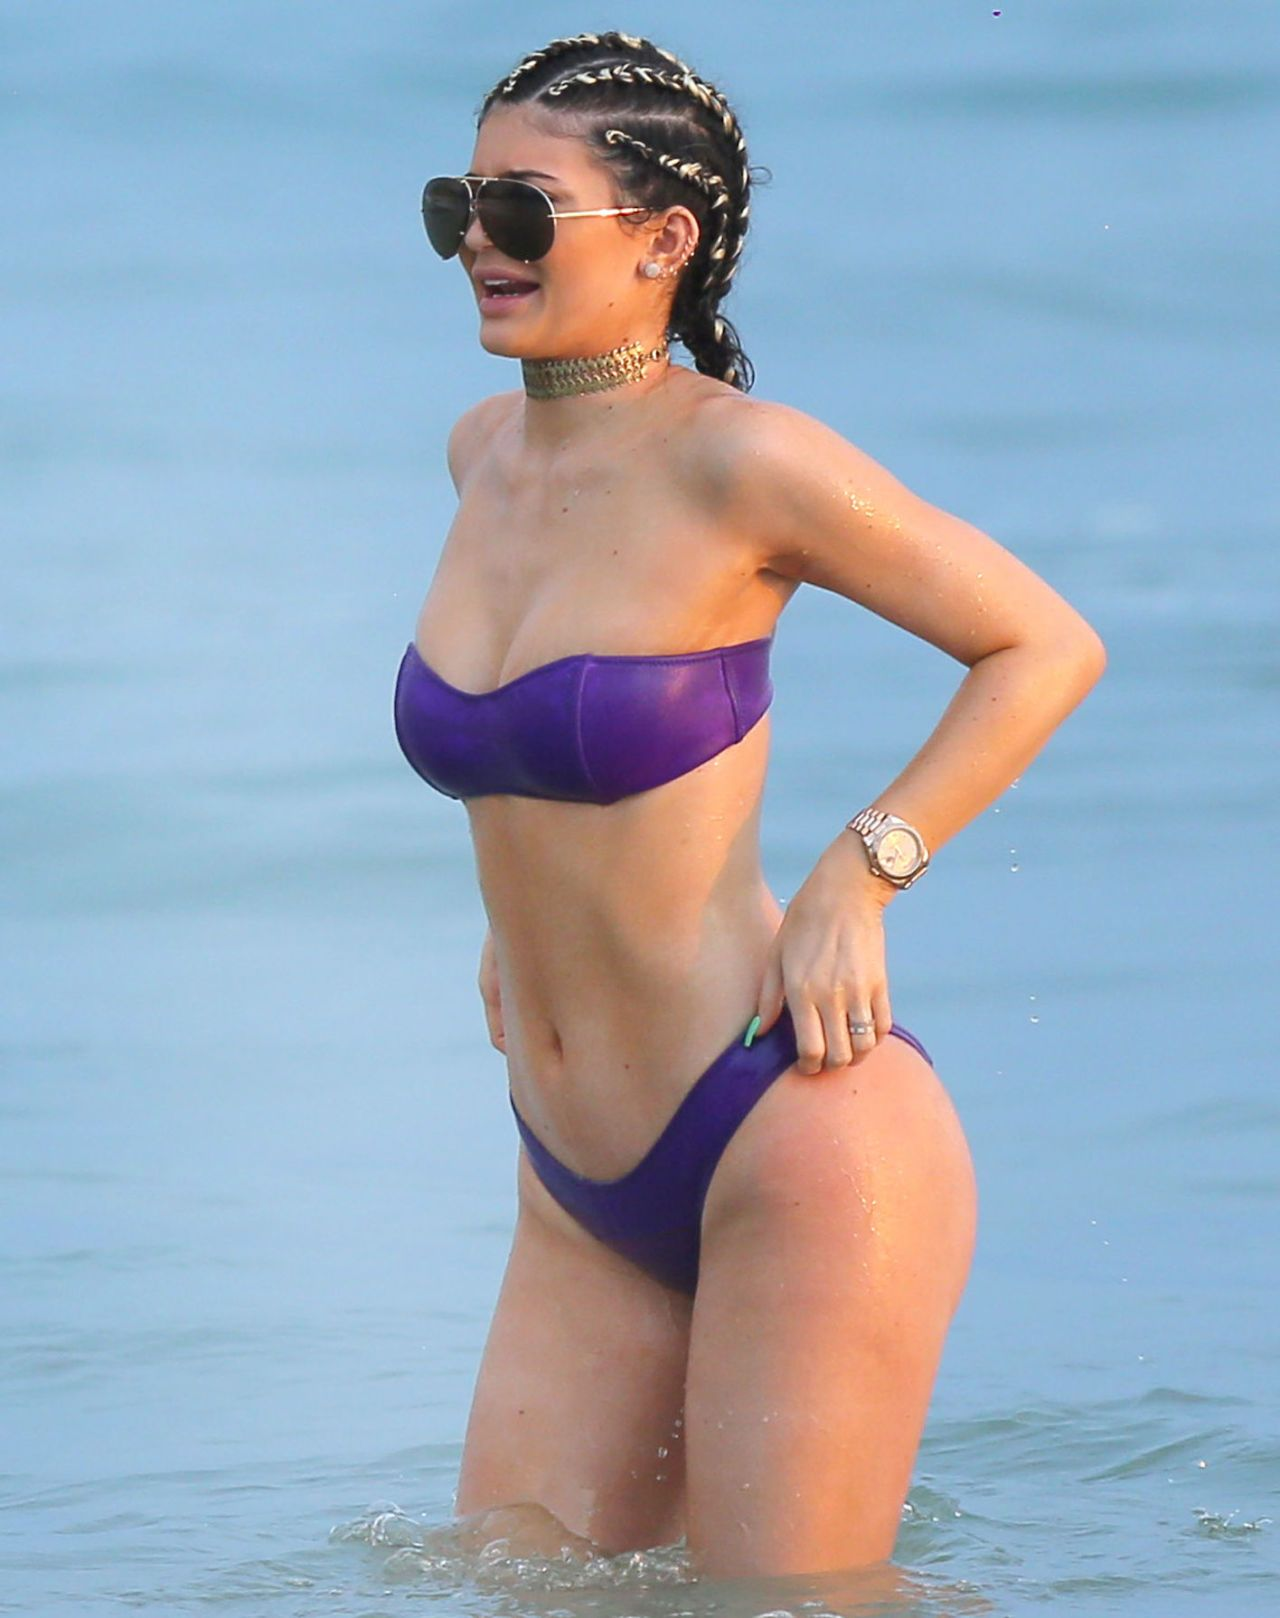 You See In Is Jenner To Wearing Bikinis The Kylie Wants Really She lc5JF1K3Tu